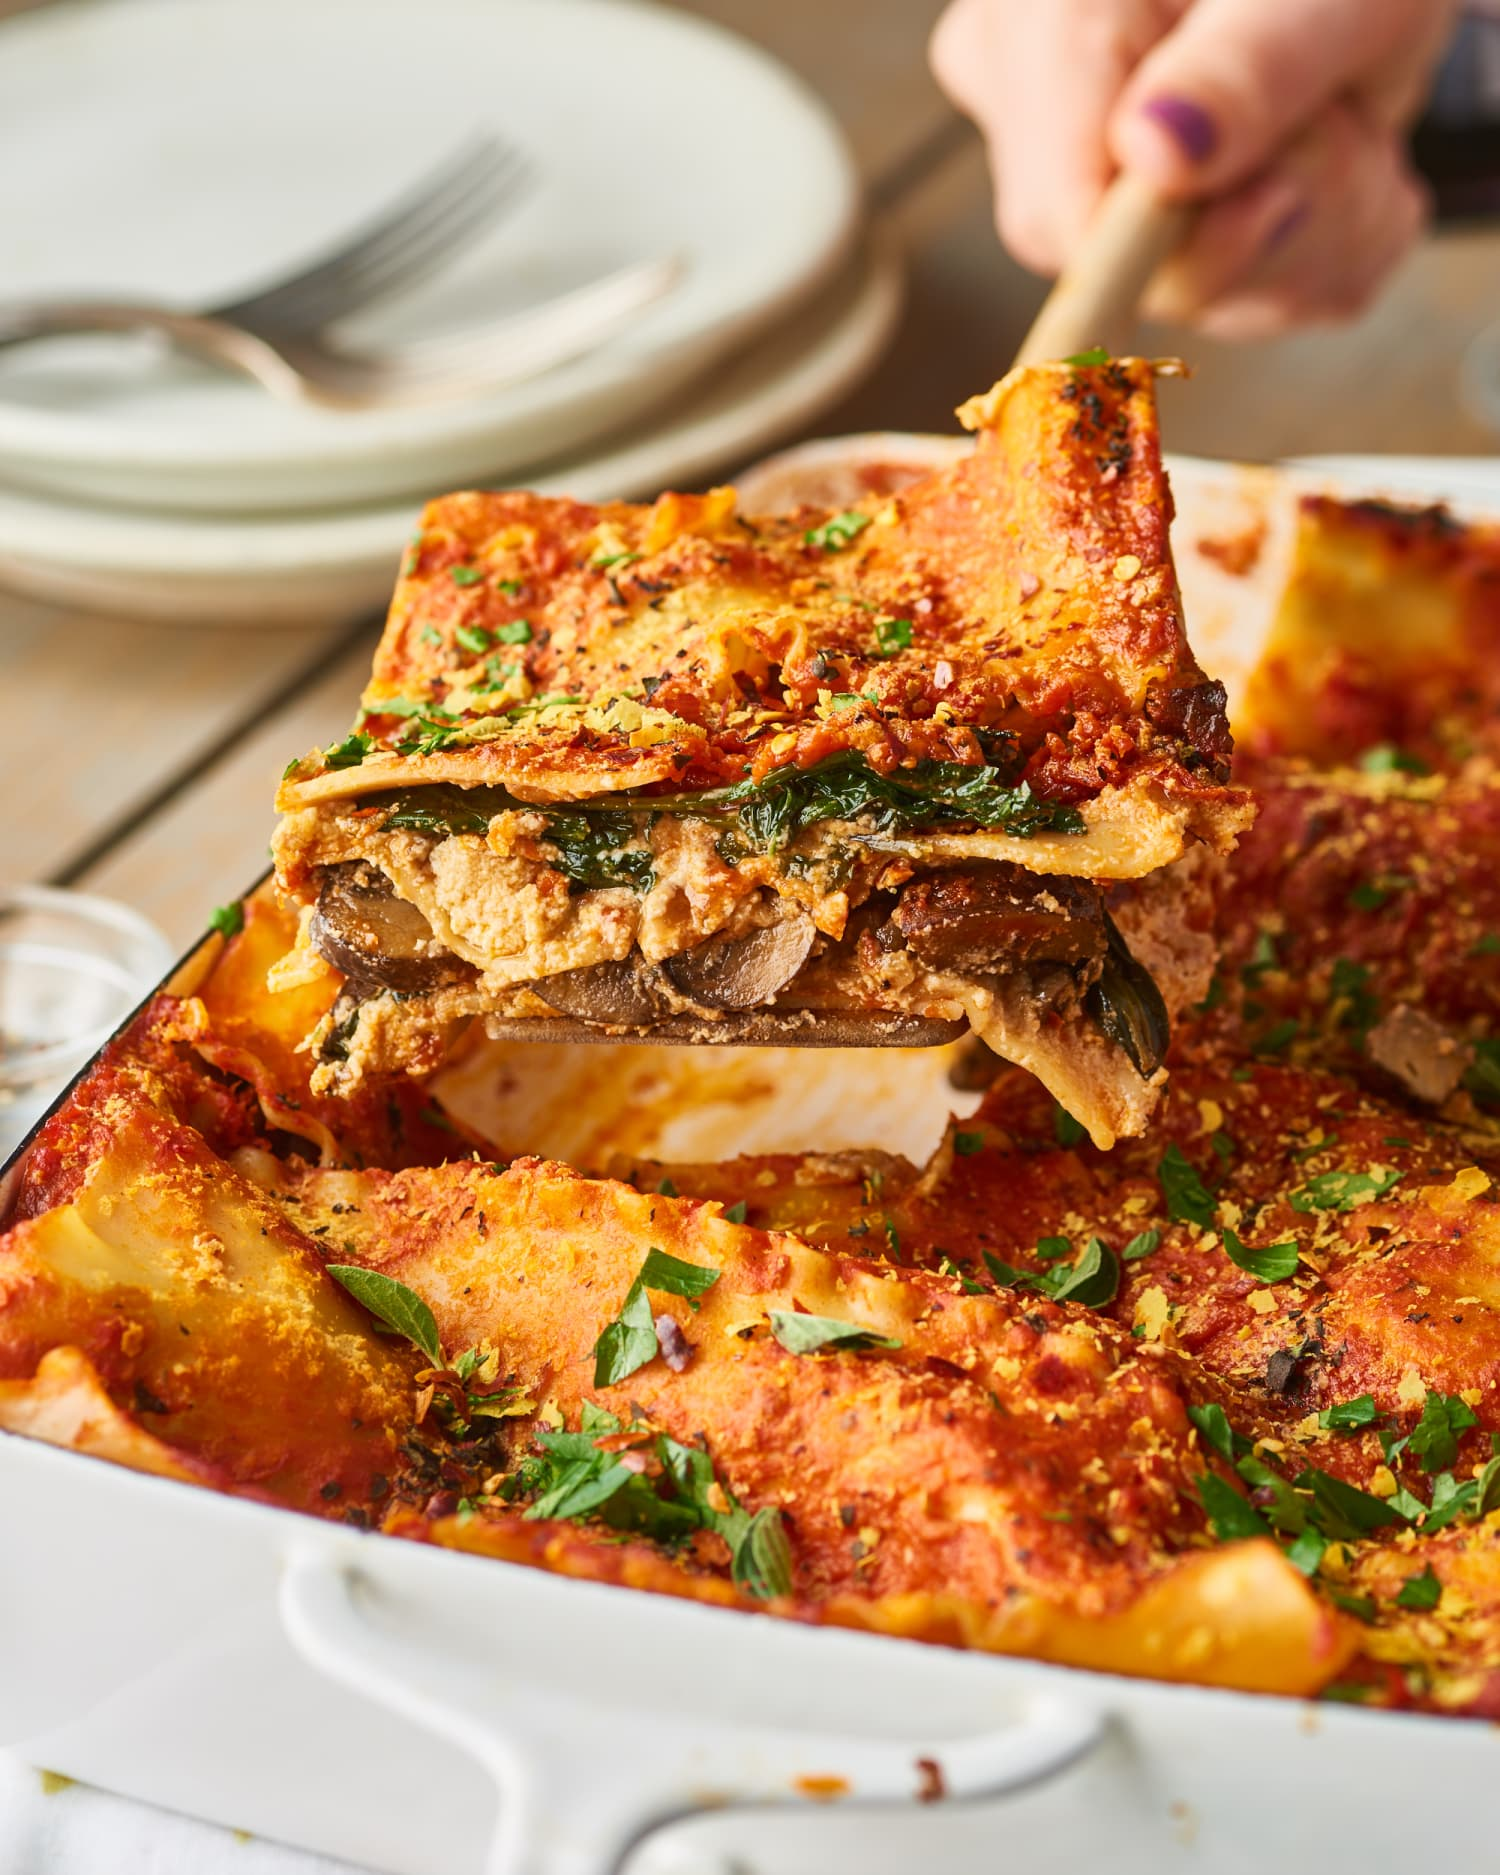 This Vegan Lasagna is Guaranteed to Fool Your Cheese-Loving Friends